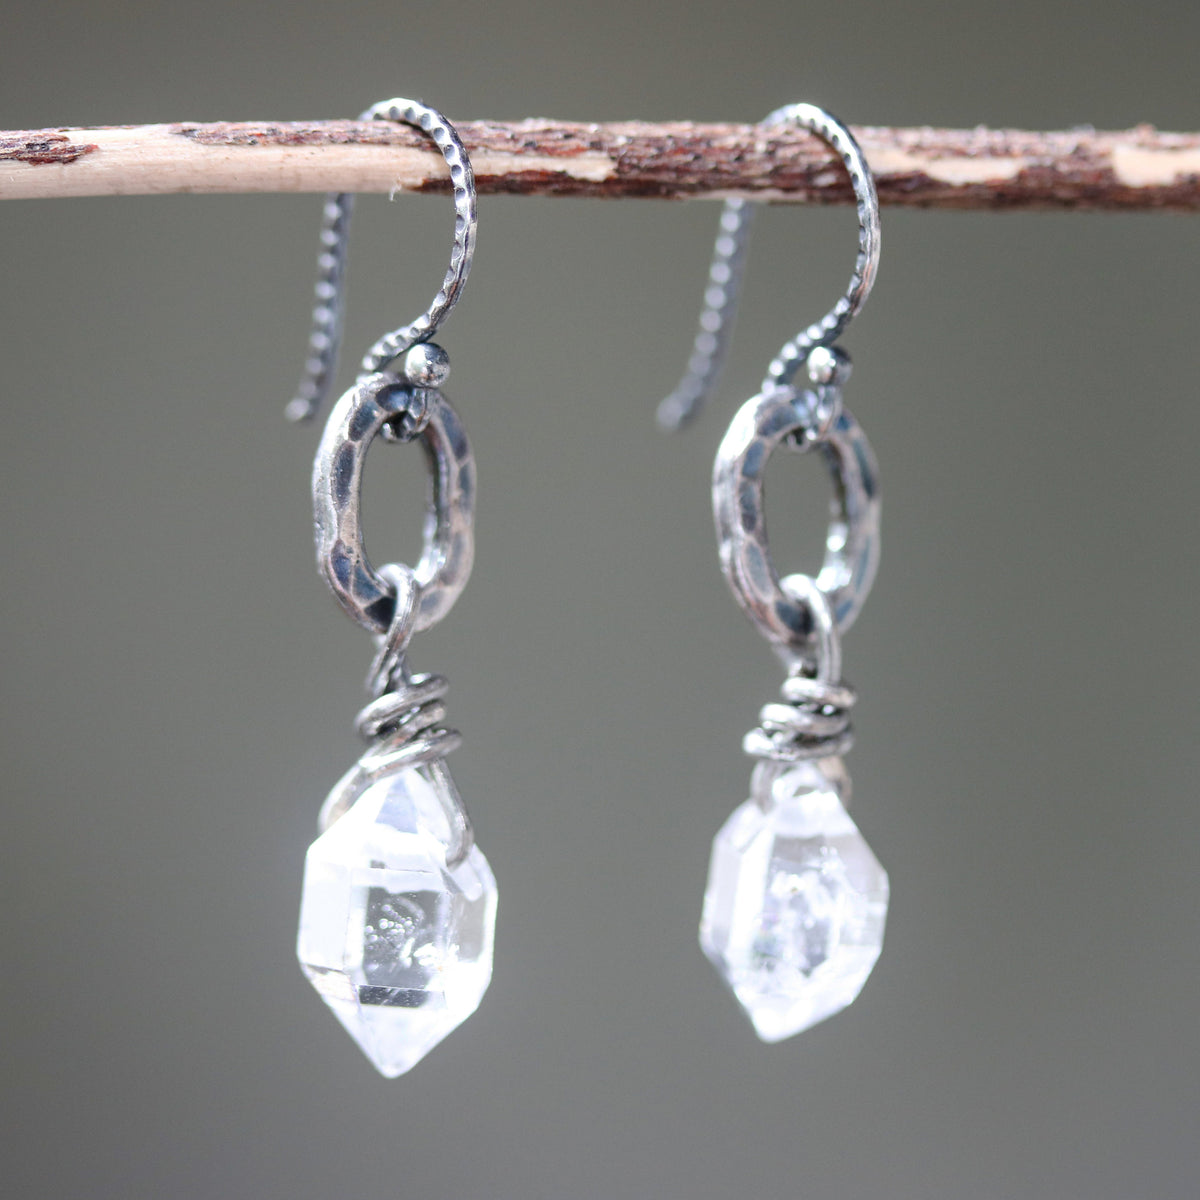 Earrings,Clear quartz crystal with silver oval shape with hammer textures on sterling silver hooks style(FBA)